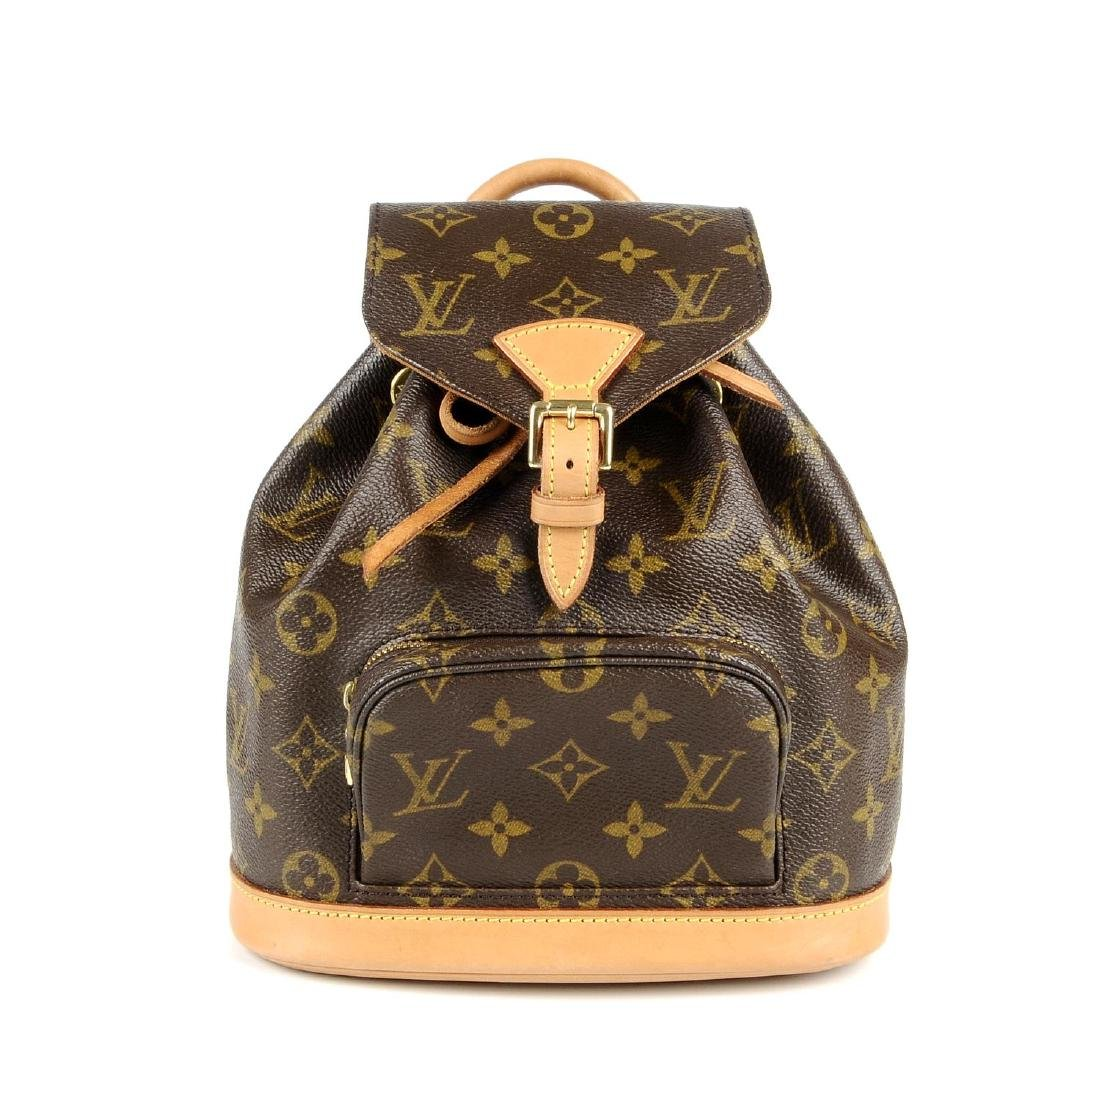 LOUIS VUITTON - a Mini Monogram Montsouris backpack.